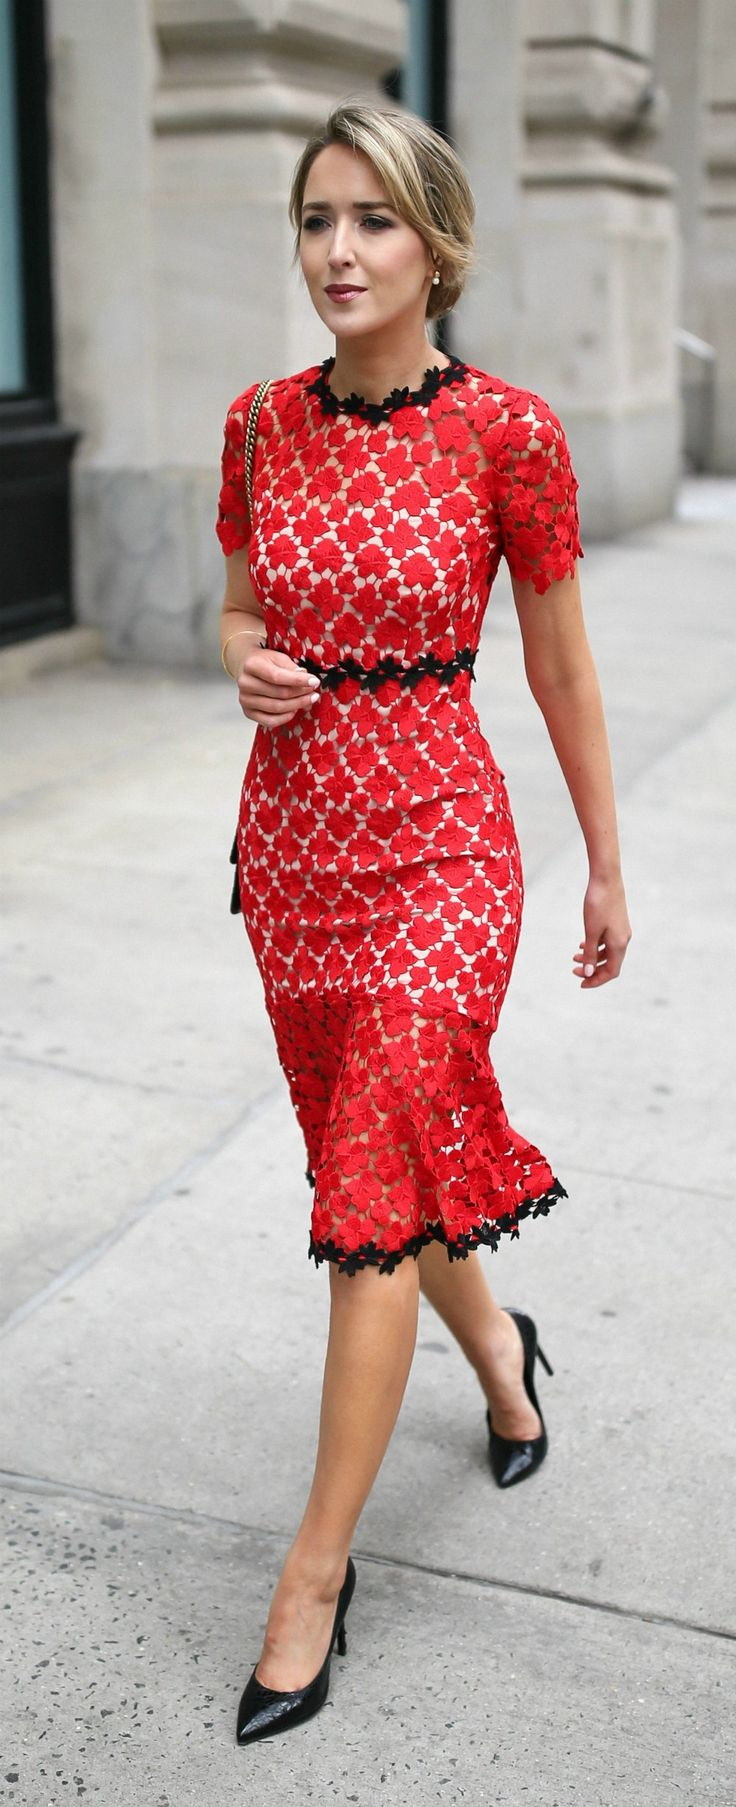 Best 25 red midi dress ideas on pinterest wedding guest for Red midi dress wedding guest